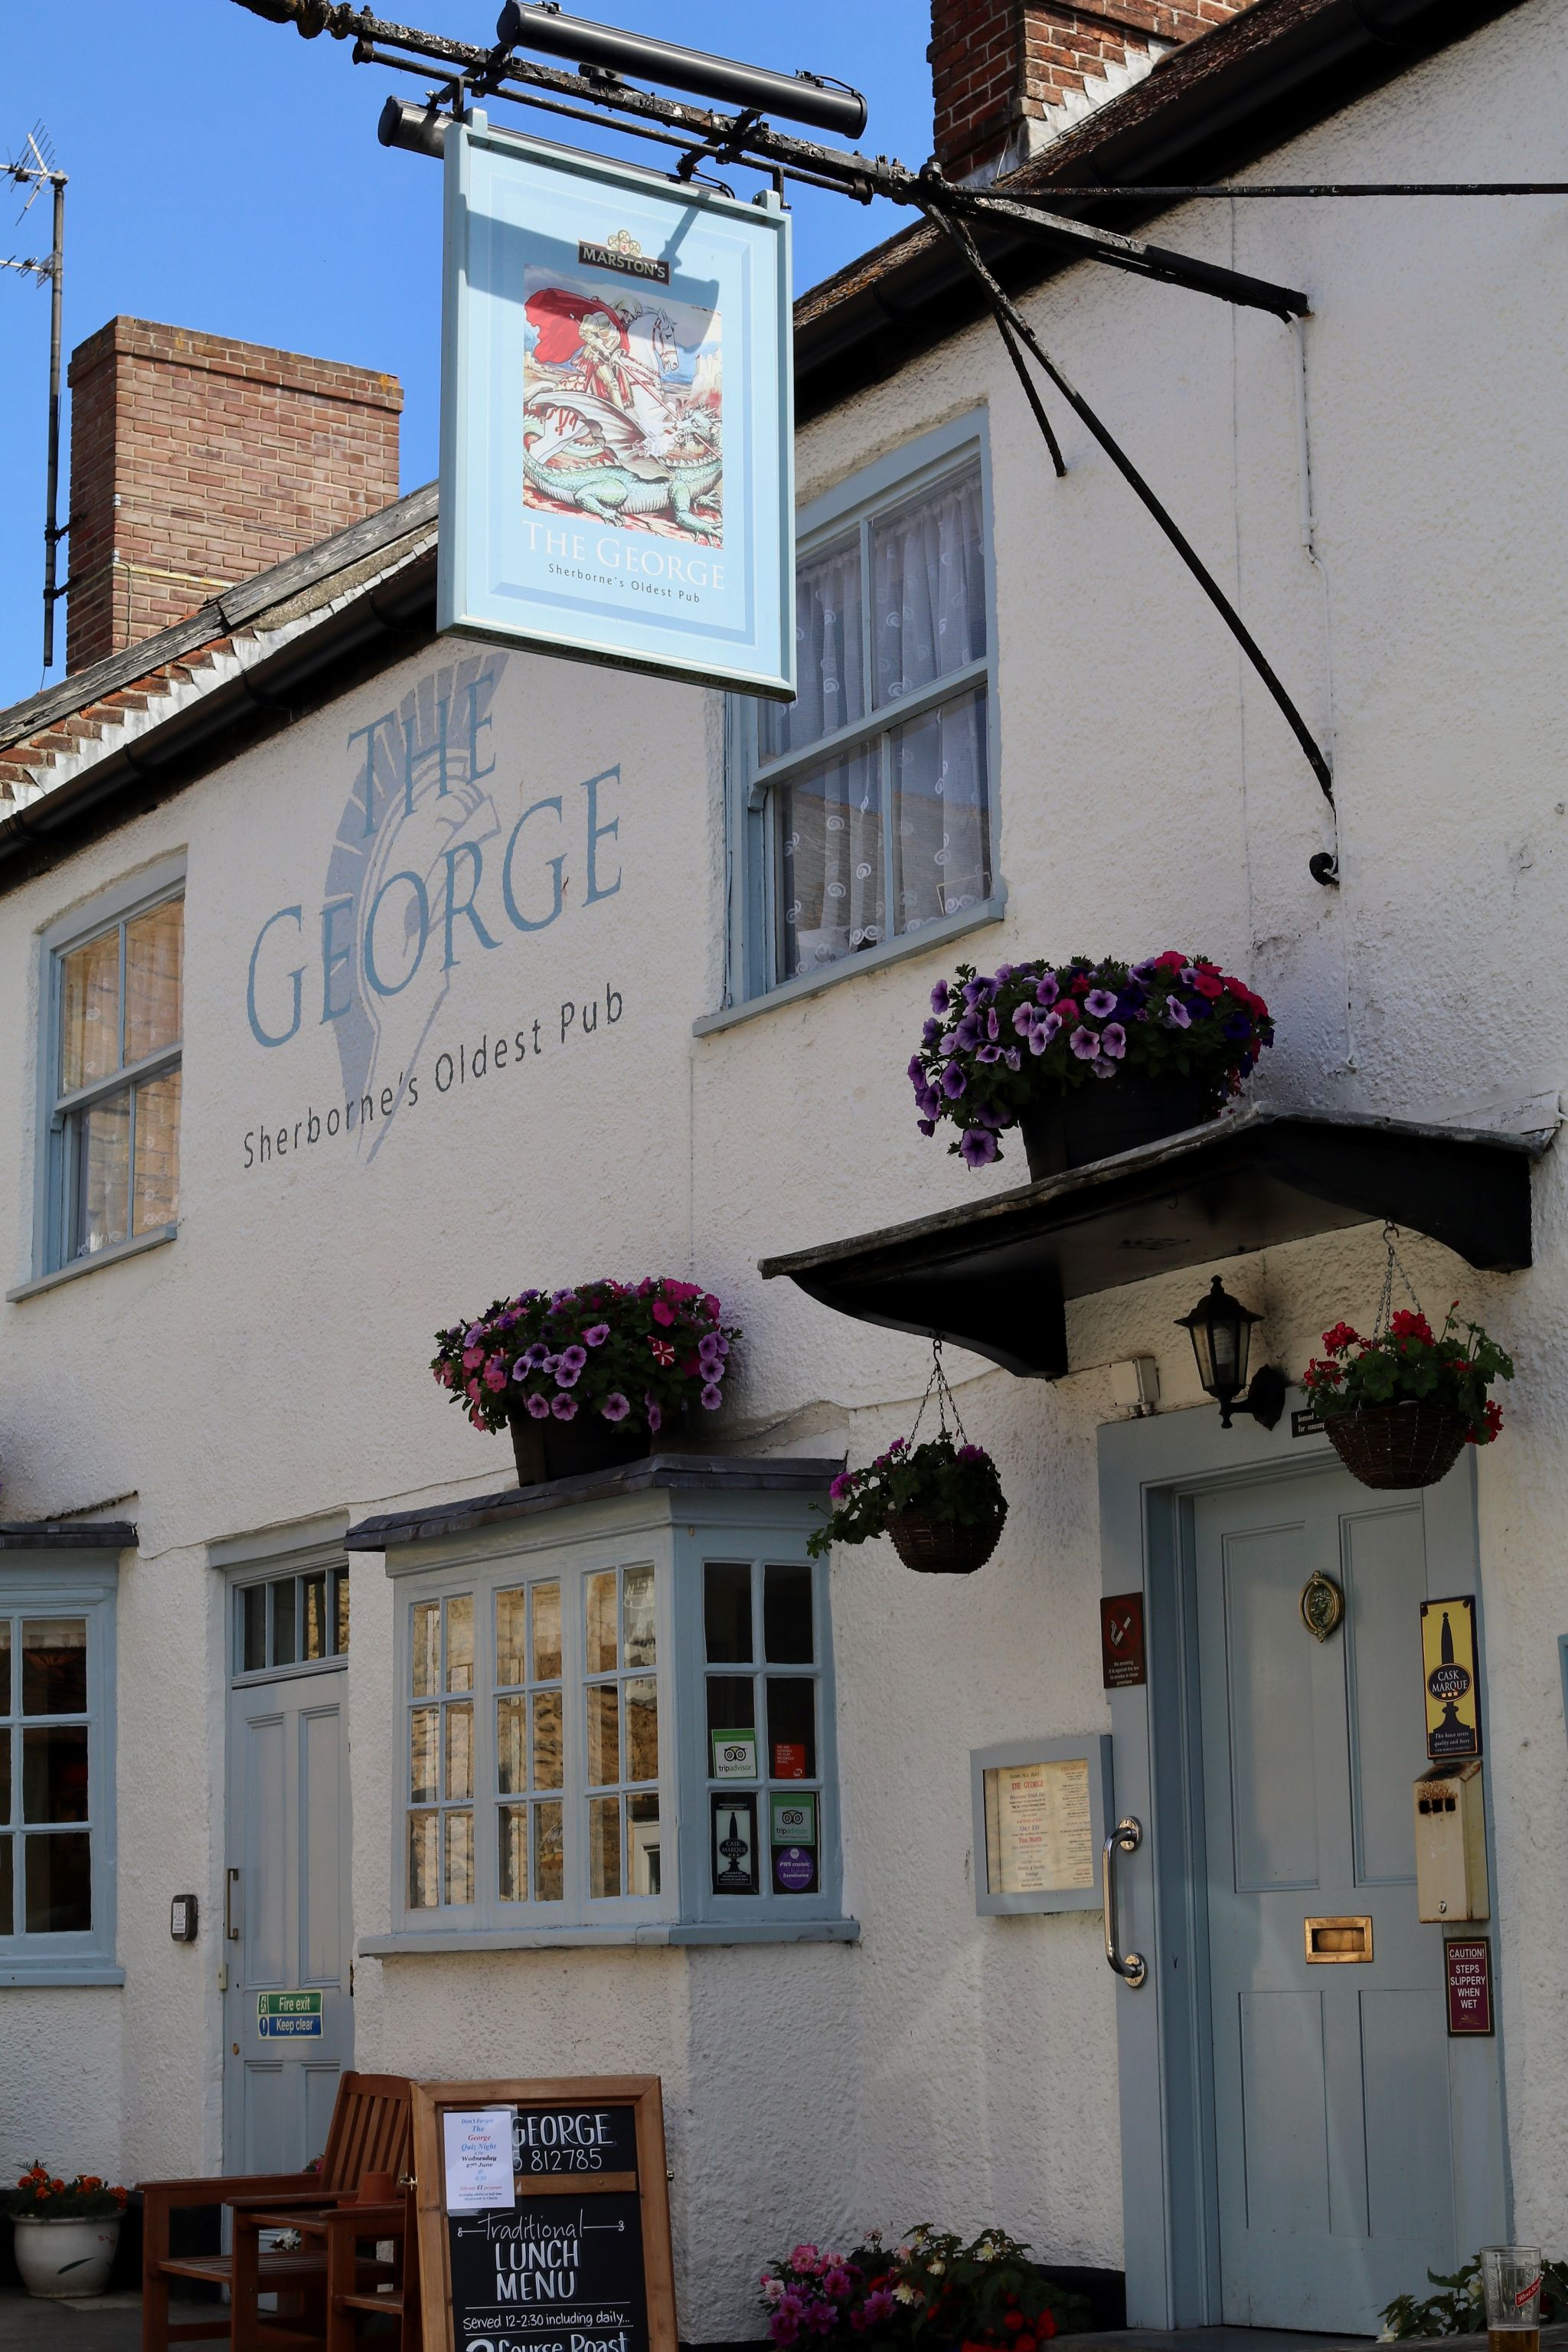 Sherborne Dorset oldest pub The George